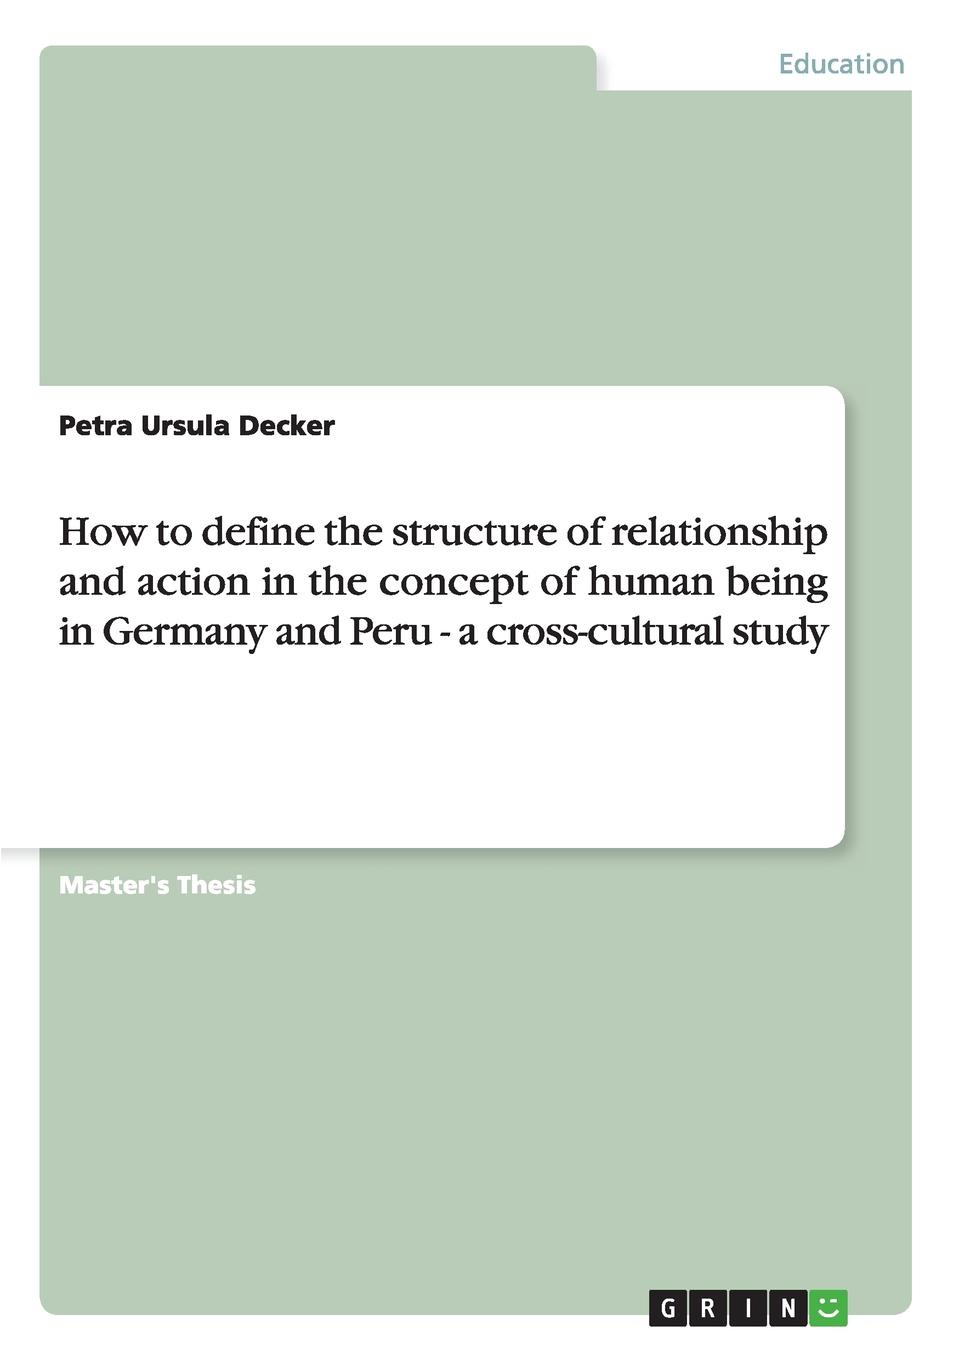 Petra Ursula Decker How to define the structure of relationship and action in the concept of human being in Germany and Peru - a cross-cultural study